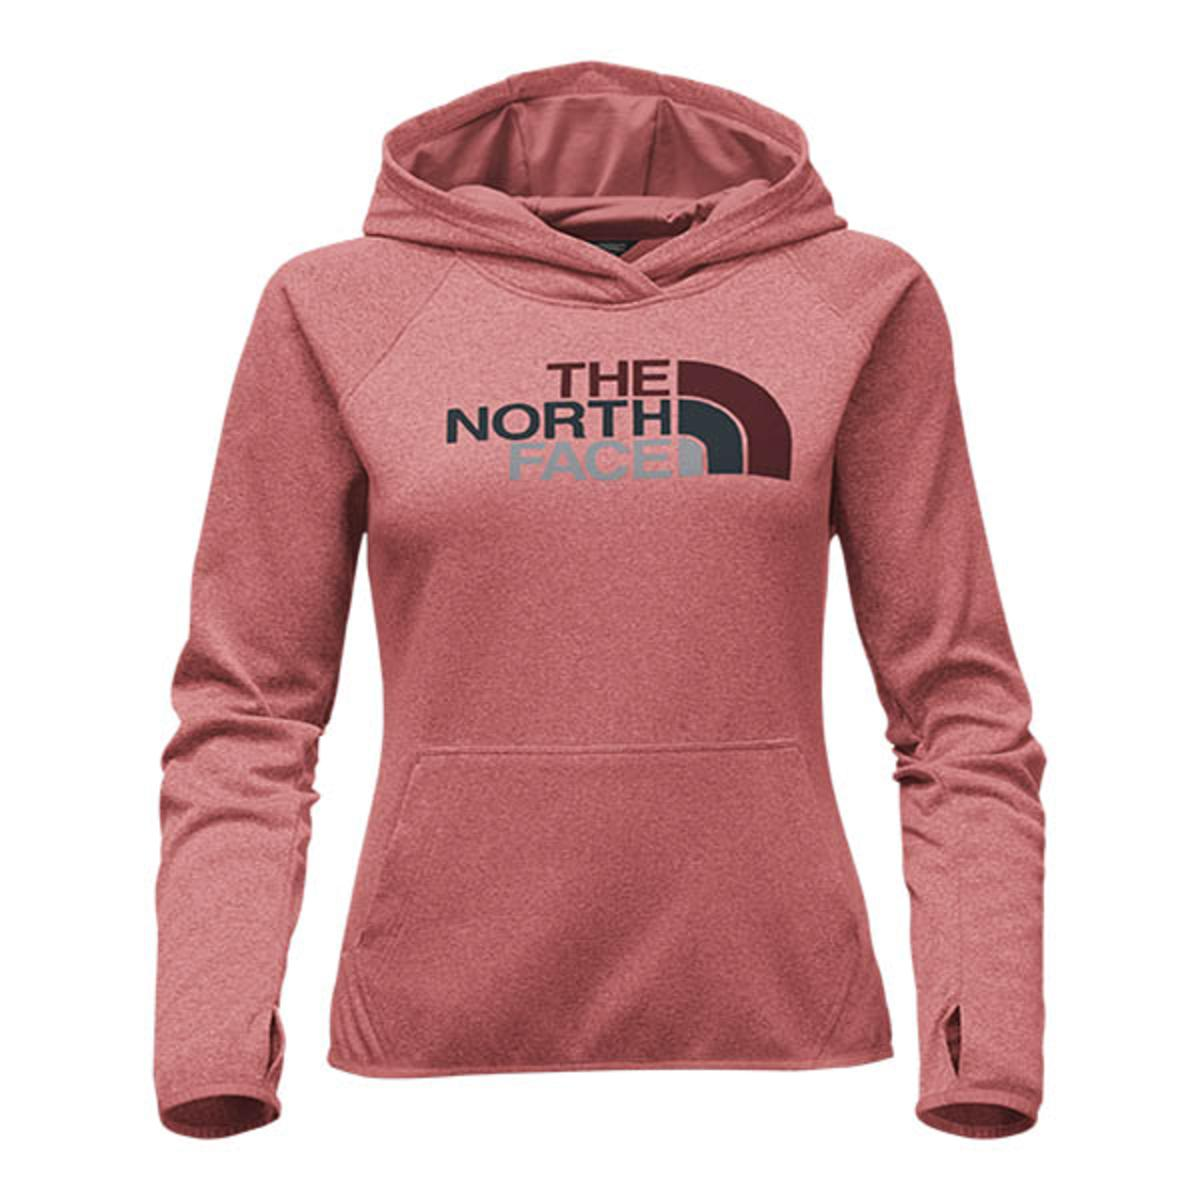 4ff3ecb79737 The North Face Women s Fave Half Dome Pull-Over Hoodie - Faded Rose Heather Barolo  Red Multi - The Warming Store